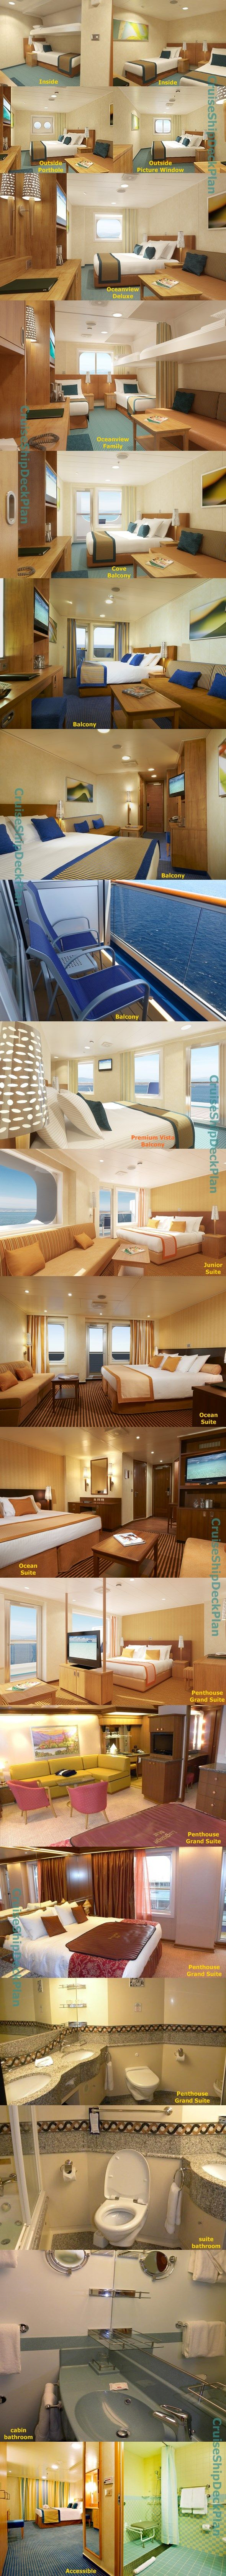 Carnival Cruise Line Carnival Magic cabins and suites photos